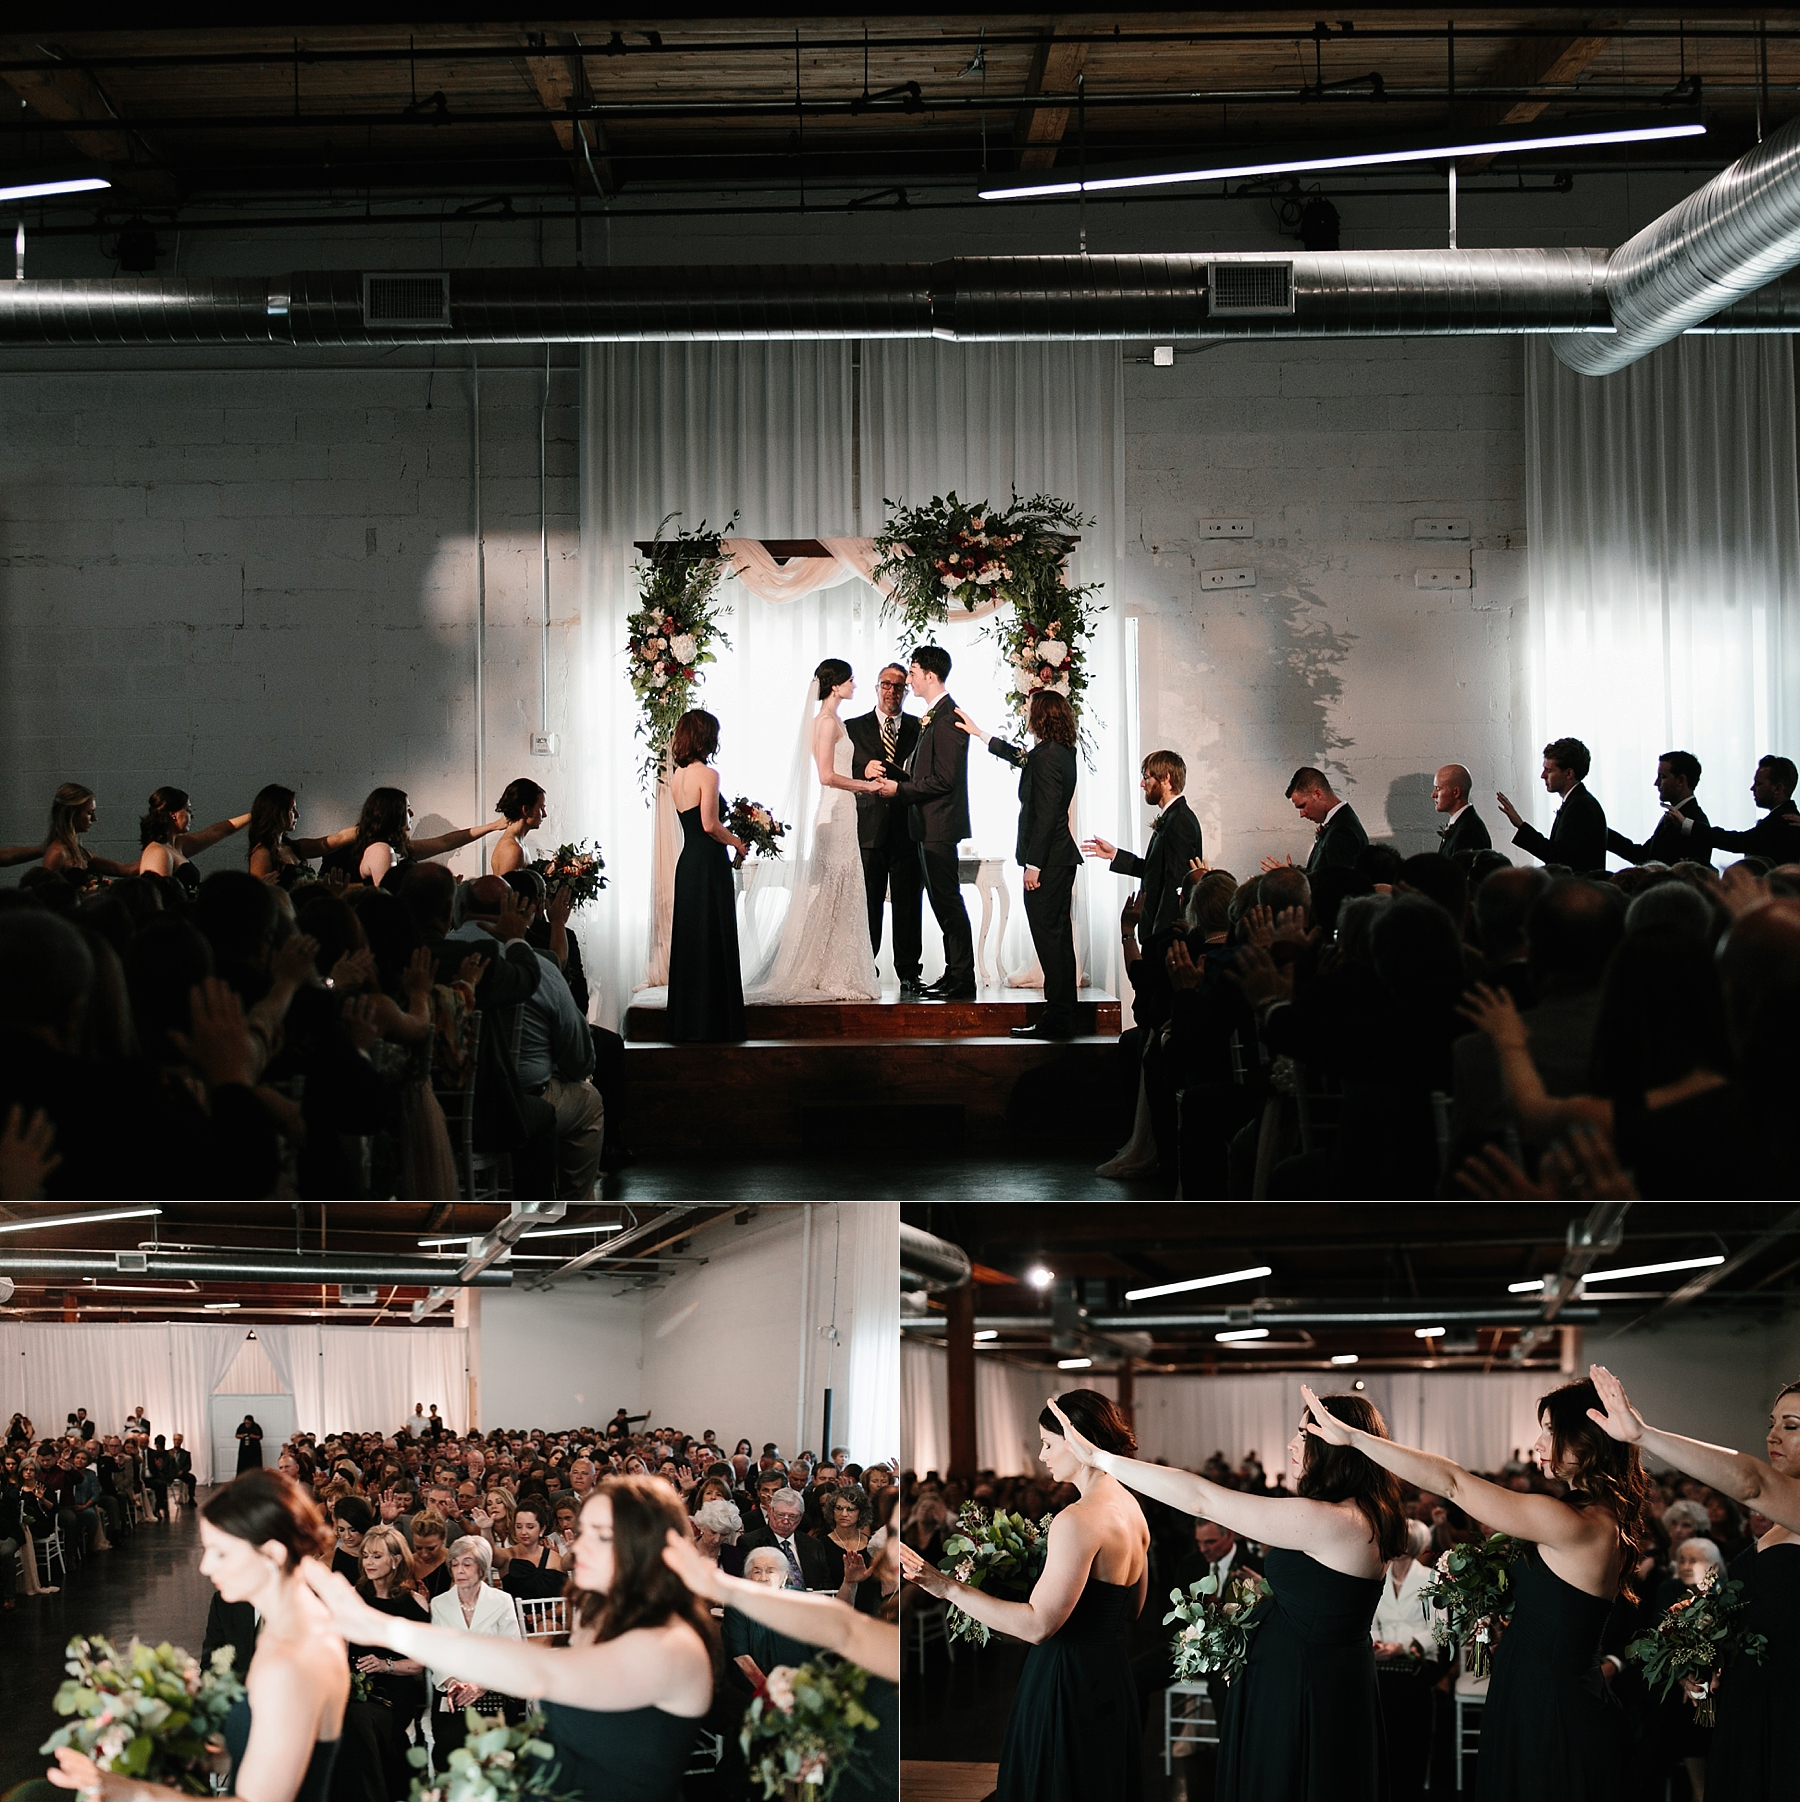 Emily + Caleb _ an elegant, intentional, industrial style wedding with navy + gold accents at 6500 in Dallas, TX by North Texas Wedding Photographer Rachel Meagan Photography _ 097